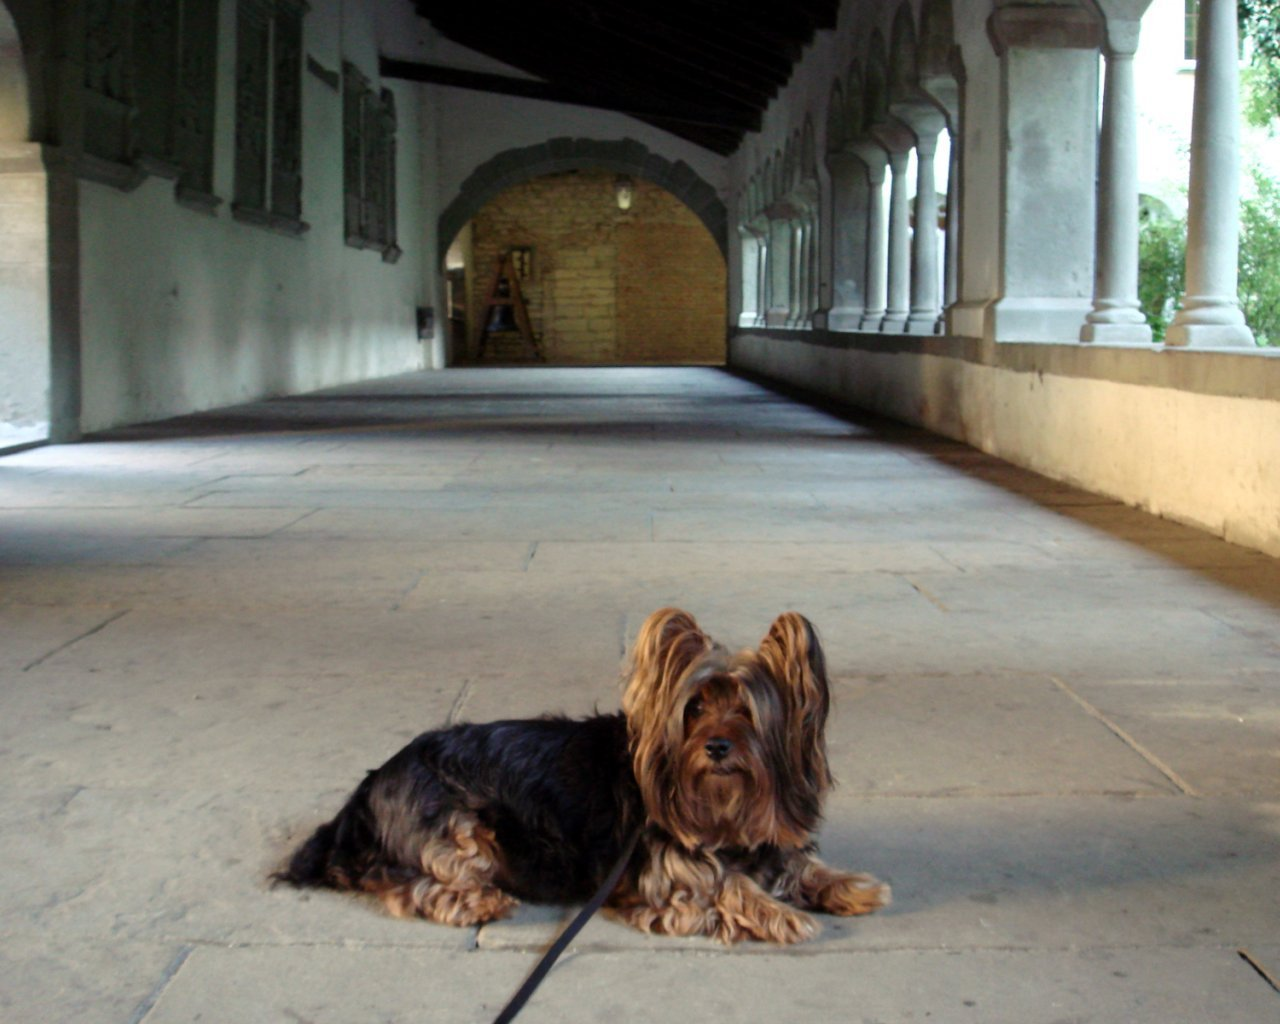 Australian Silky Terrier in the old house wallpaper